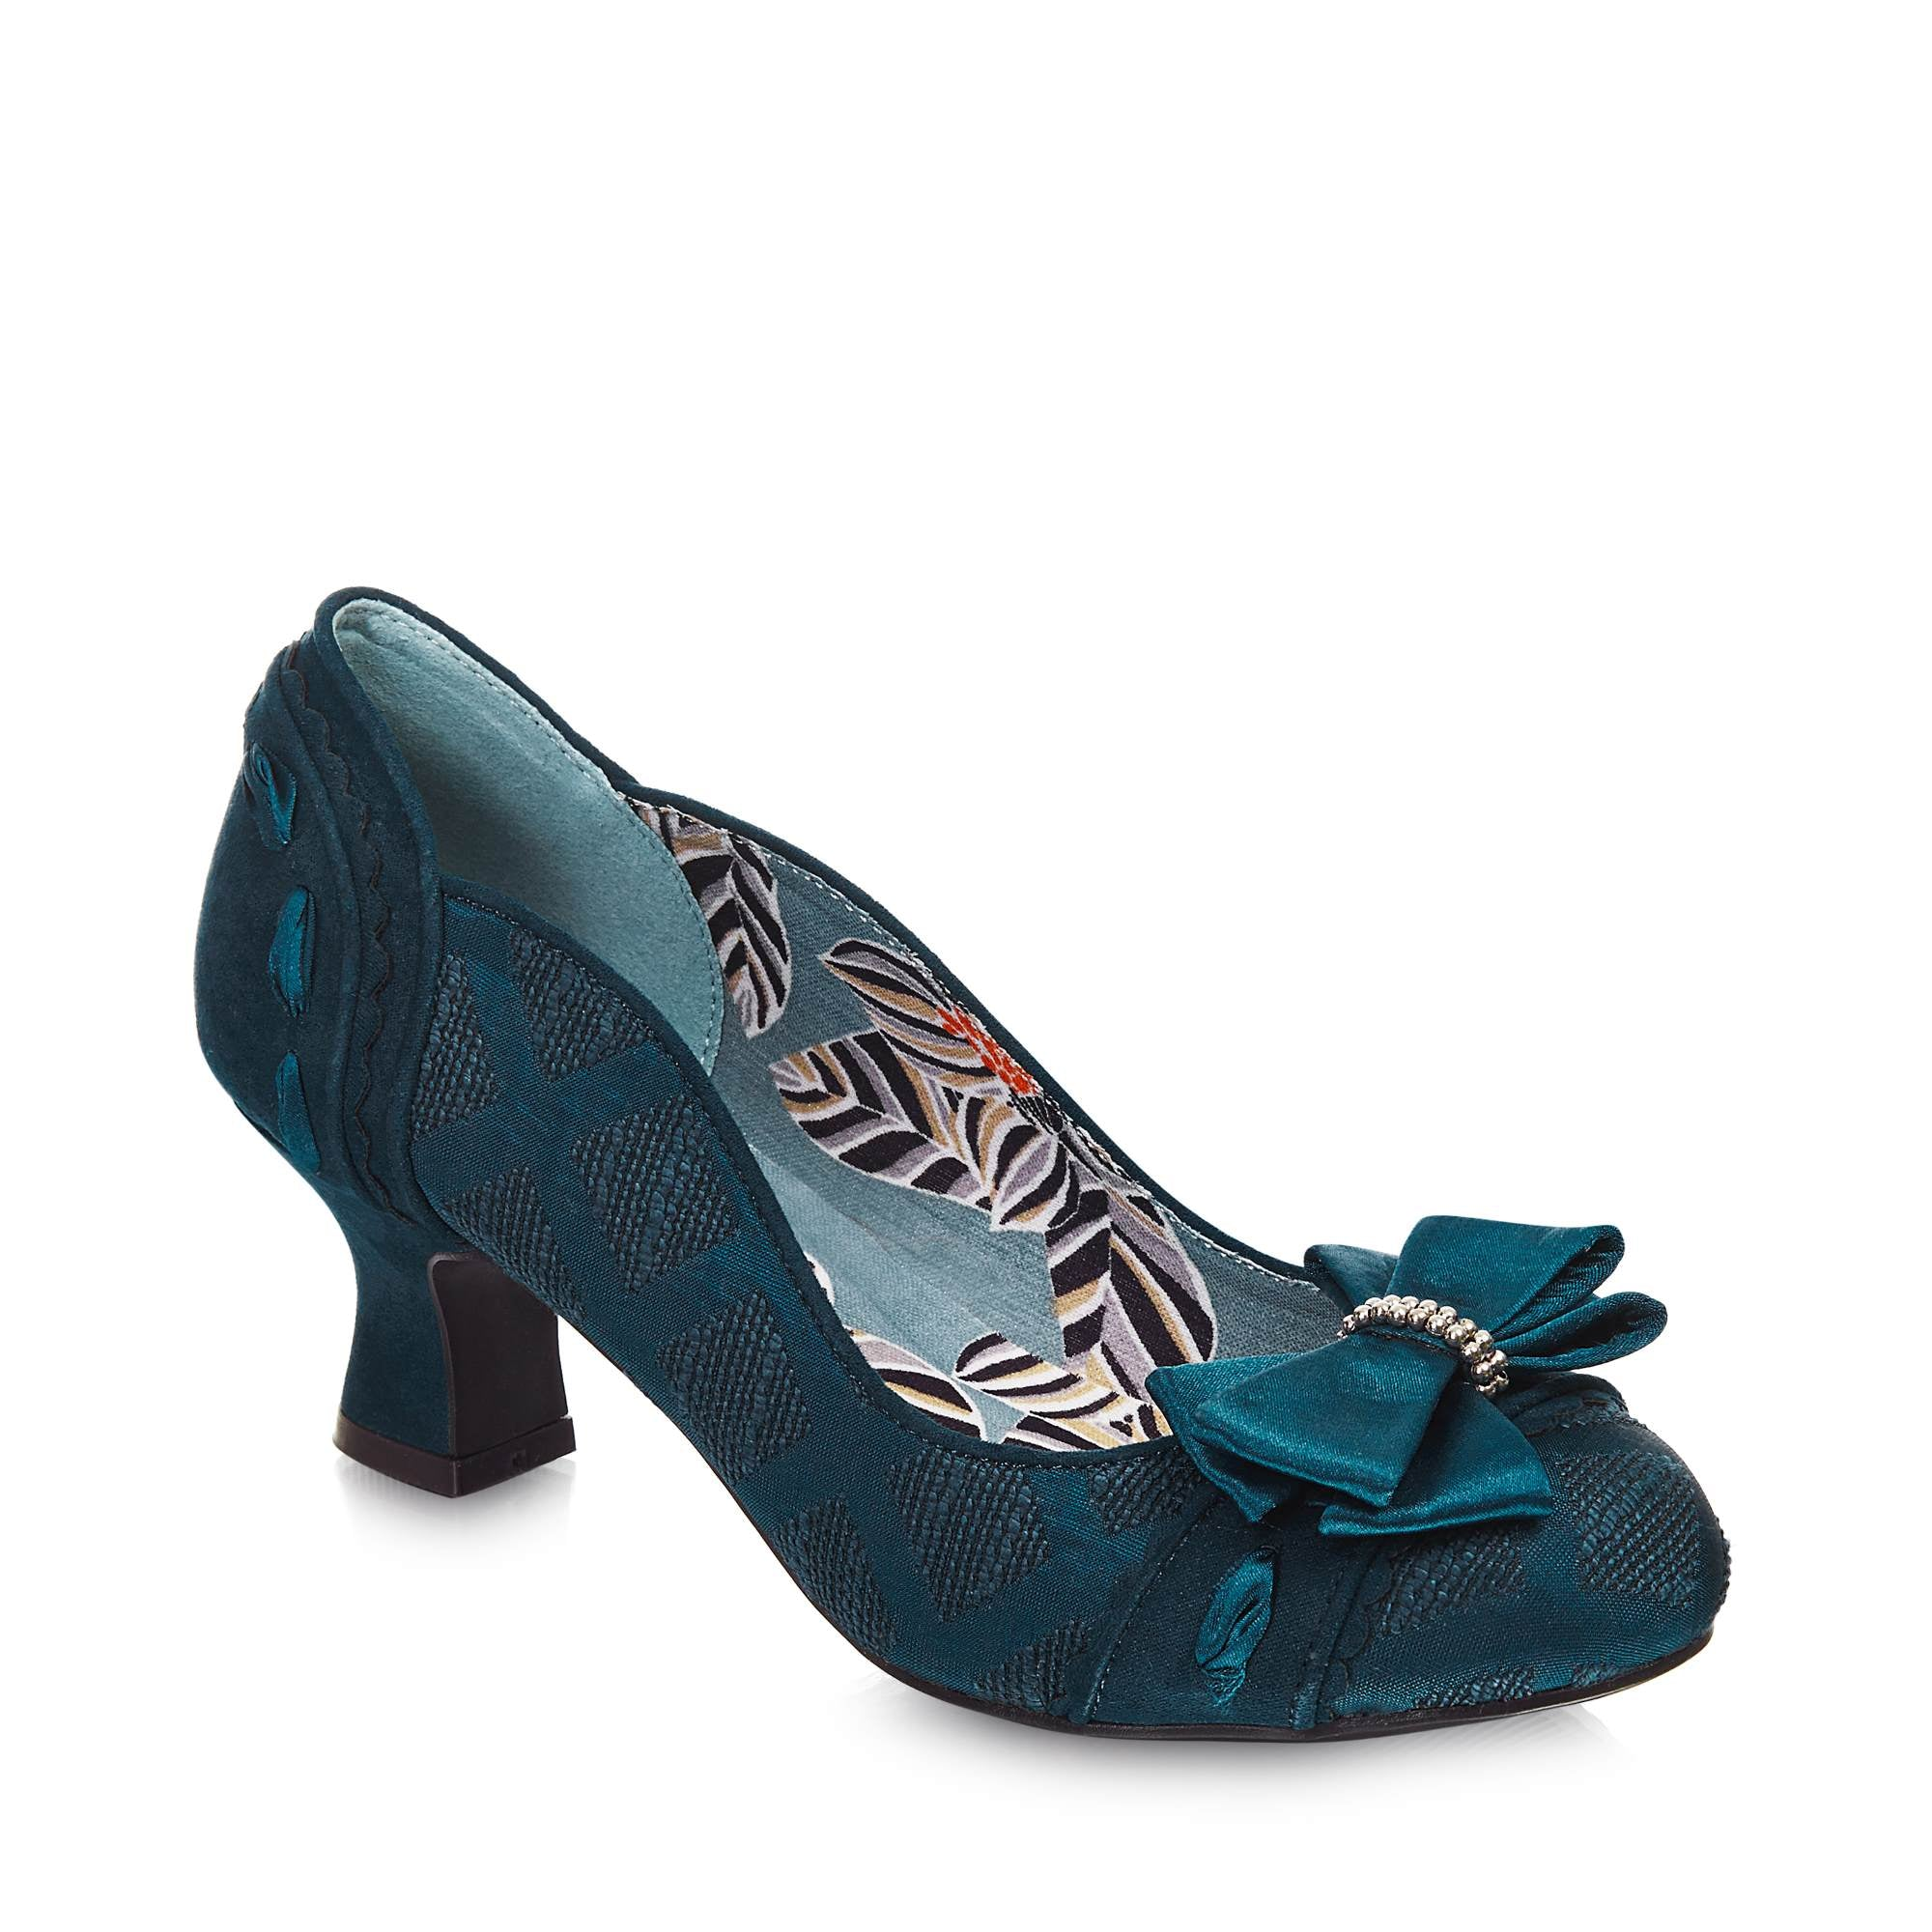 Ruby Shoo Rhea (Teal)